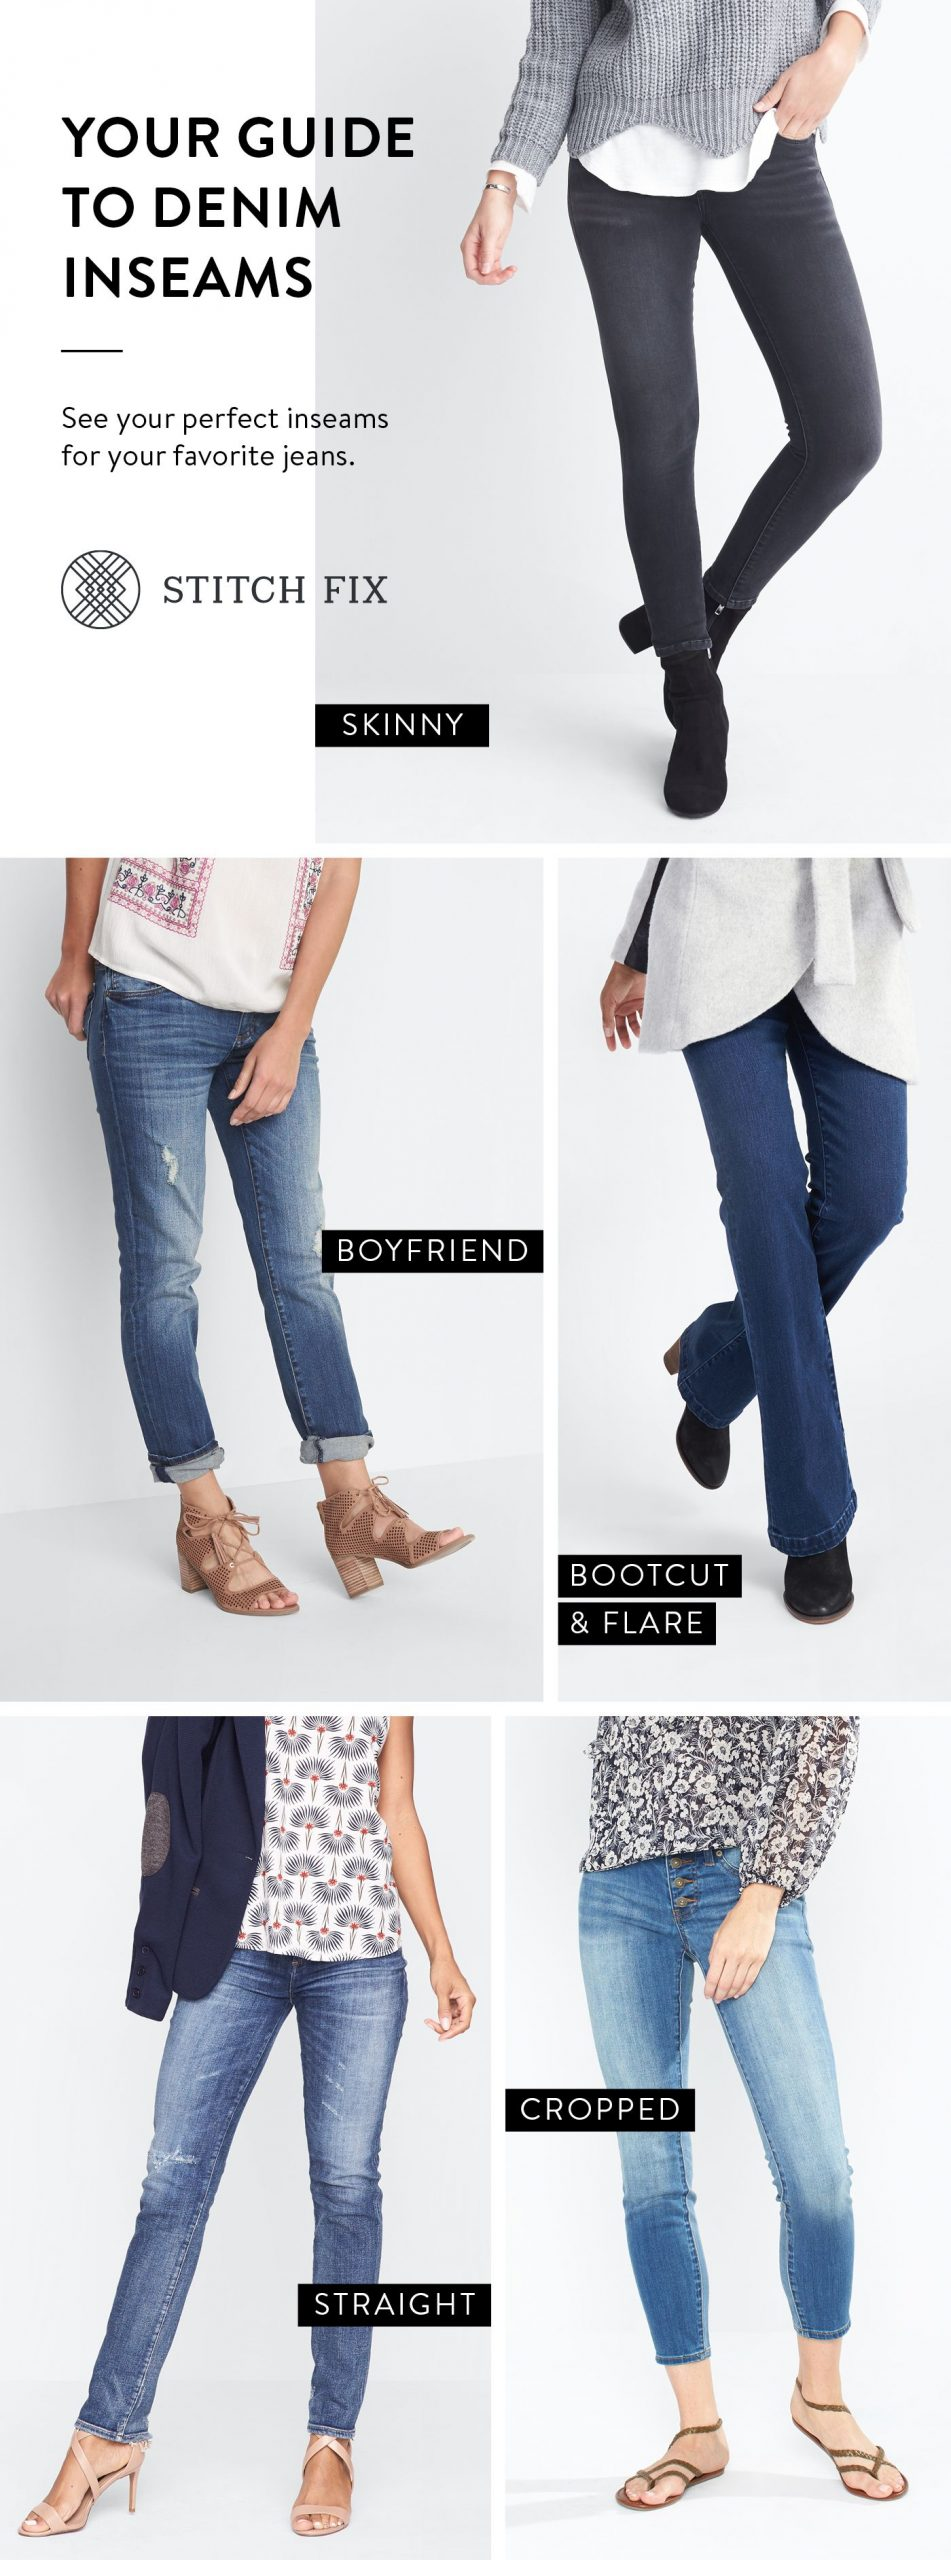 Guide to Denim Inseams for Women